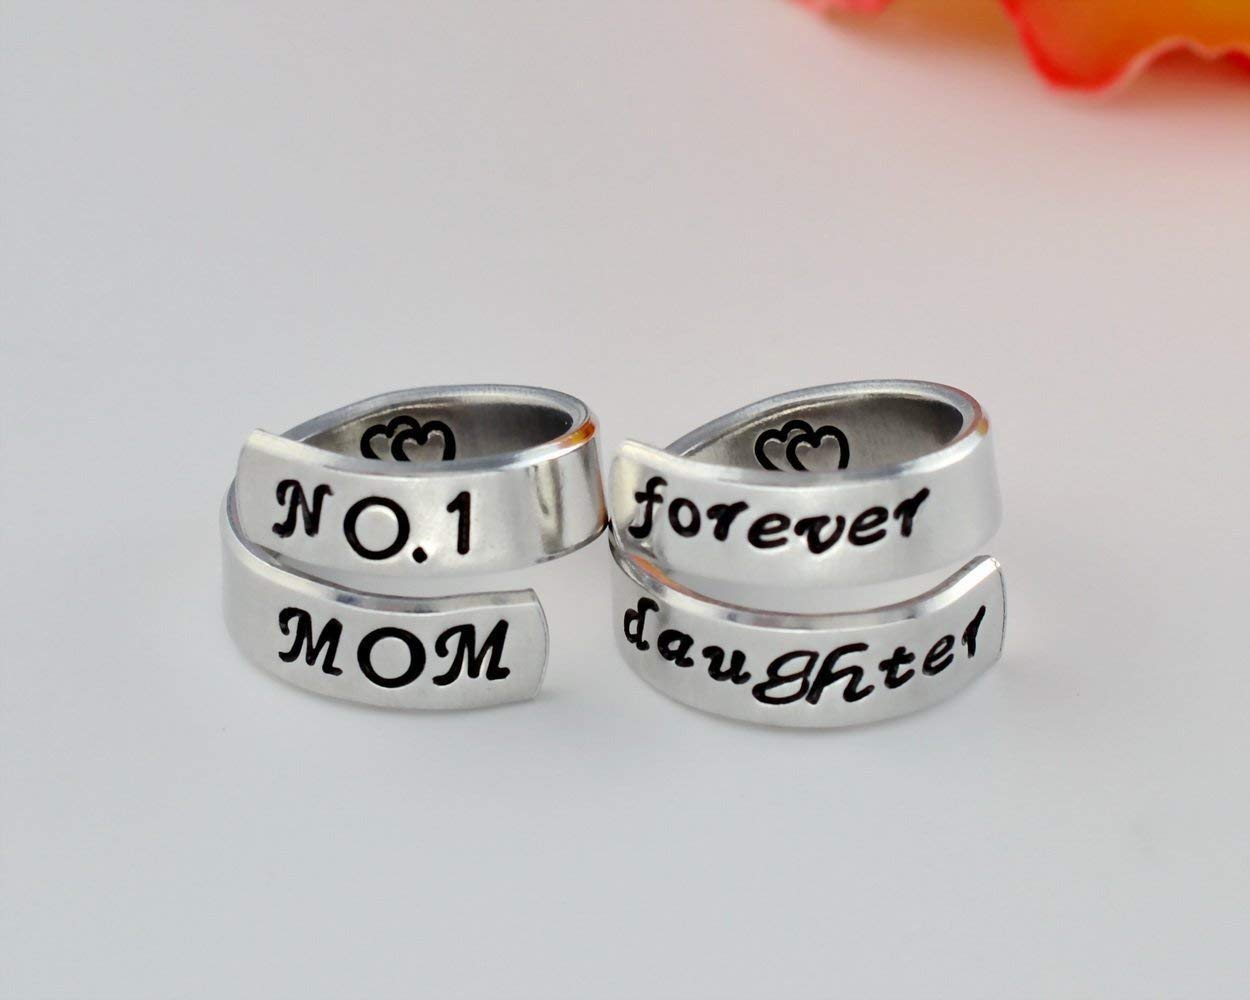 No.1 Mom/forever daughter - Hand stamped Aluminum Spiral Wrap Rings Set of 2, Best Mom, Forever Love, Mother's Day Gift